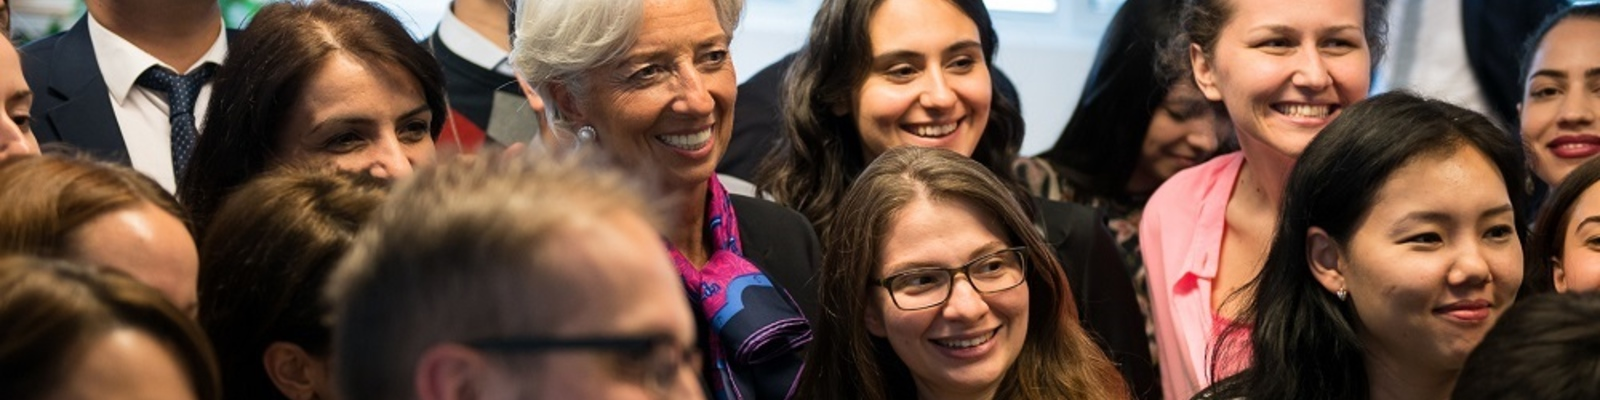 We also hold special lectures to discuss both policy and capacity development, as for example during the visit of IMF Managing Director, Christine Lagarde.